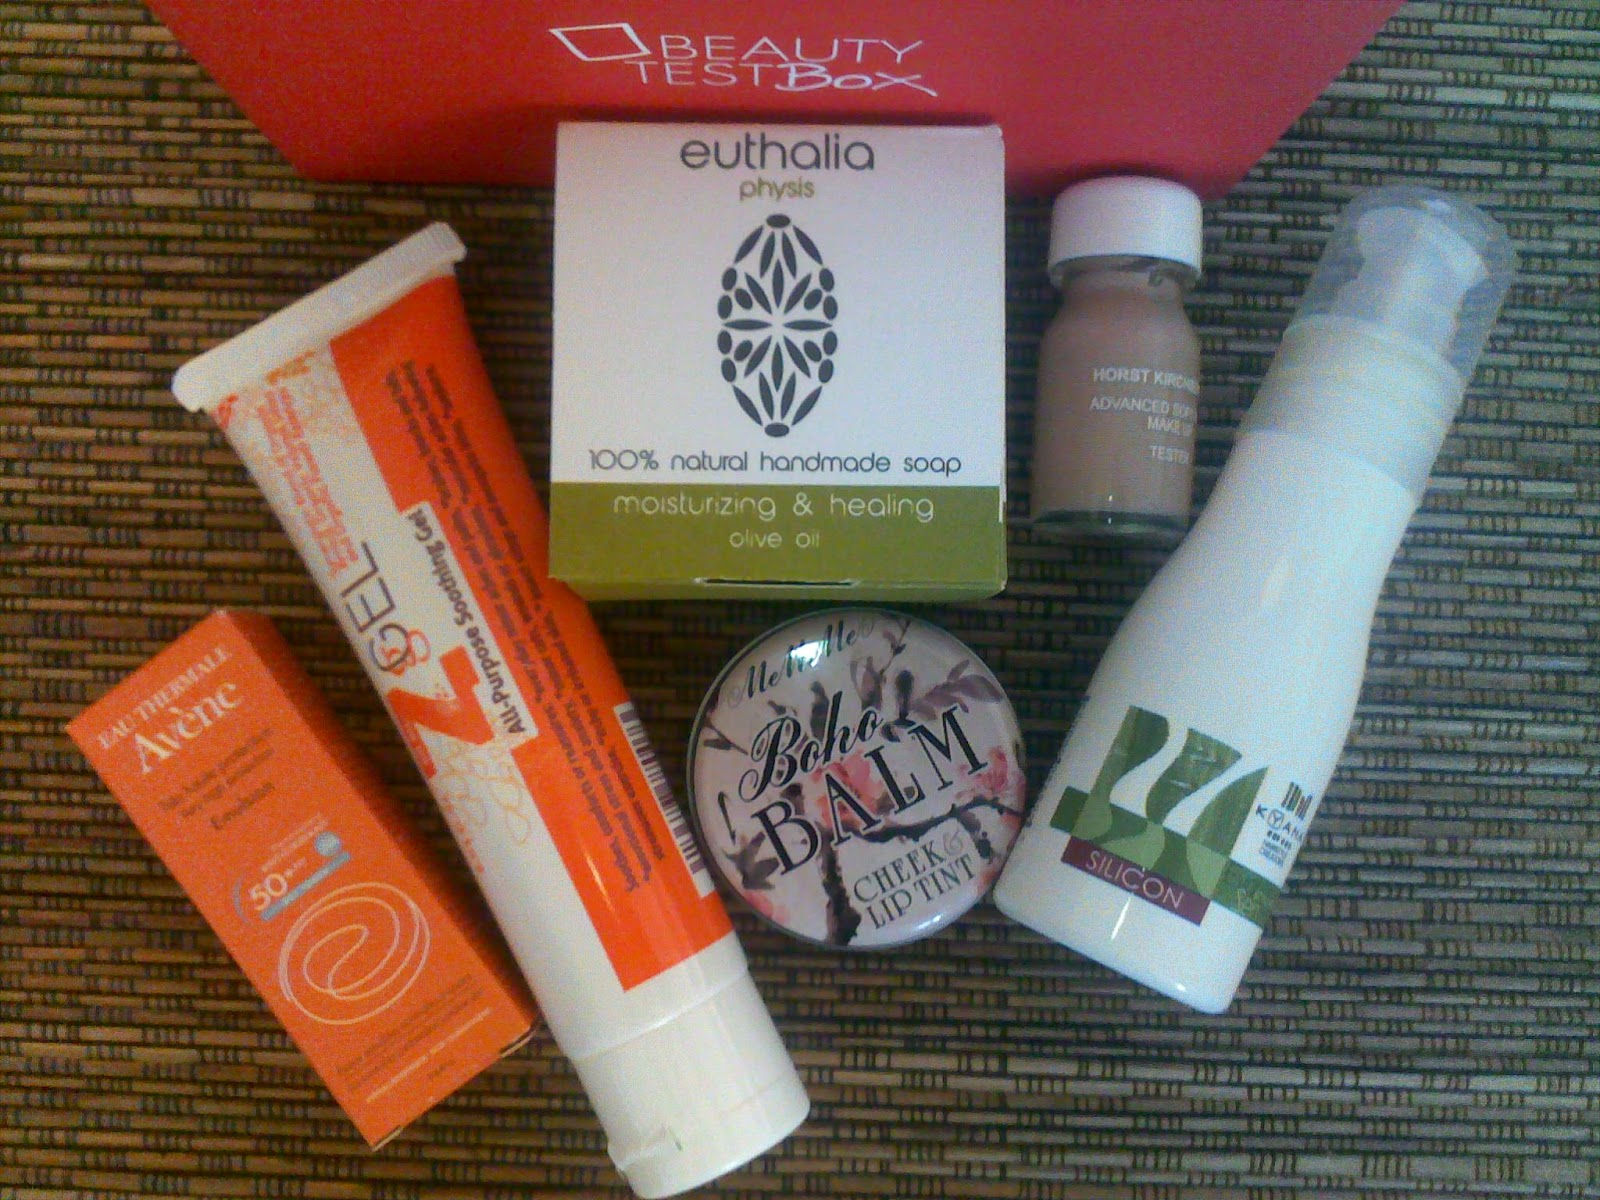 July Beautytestbox